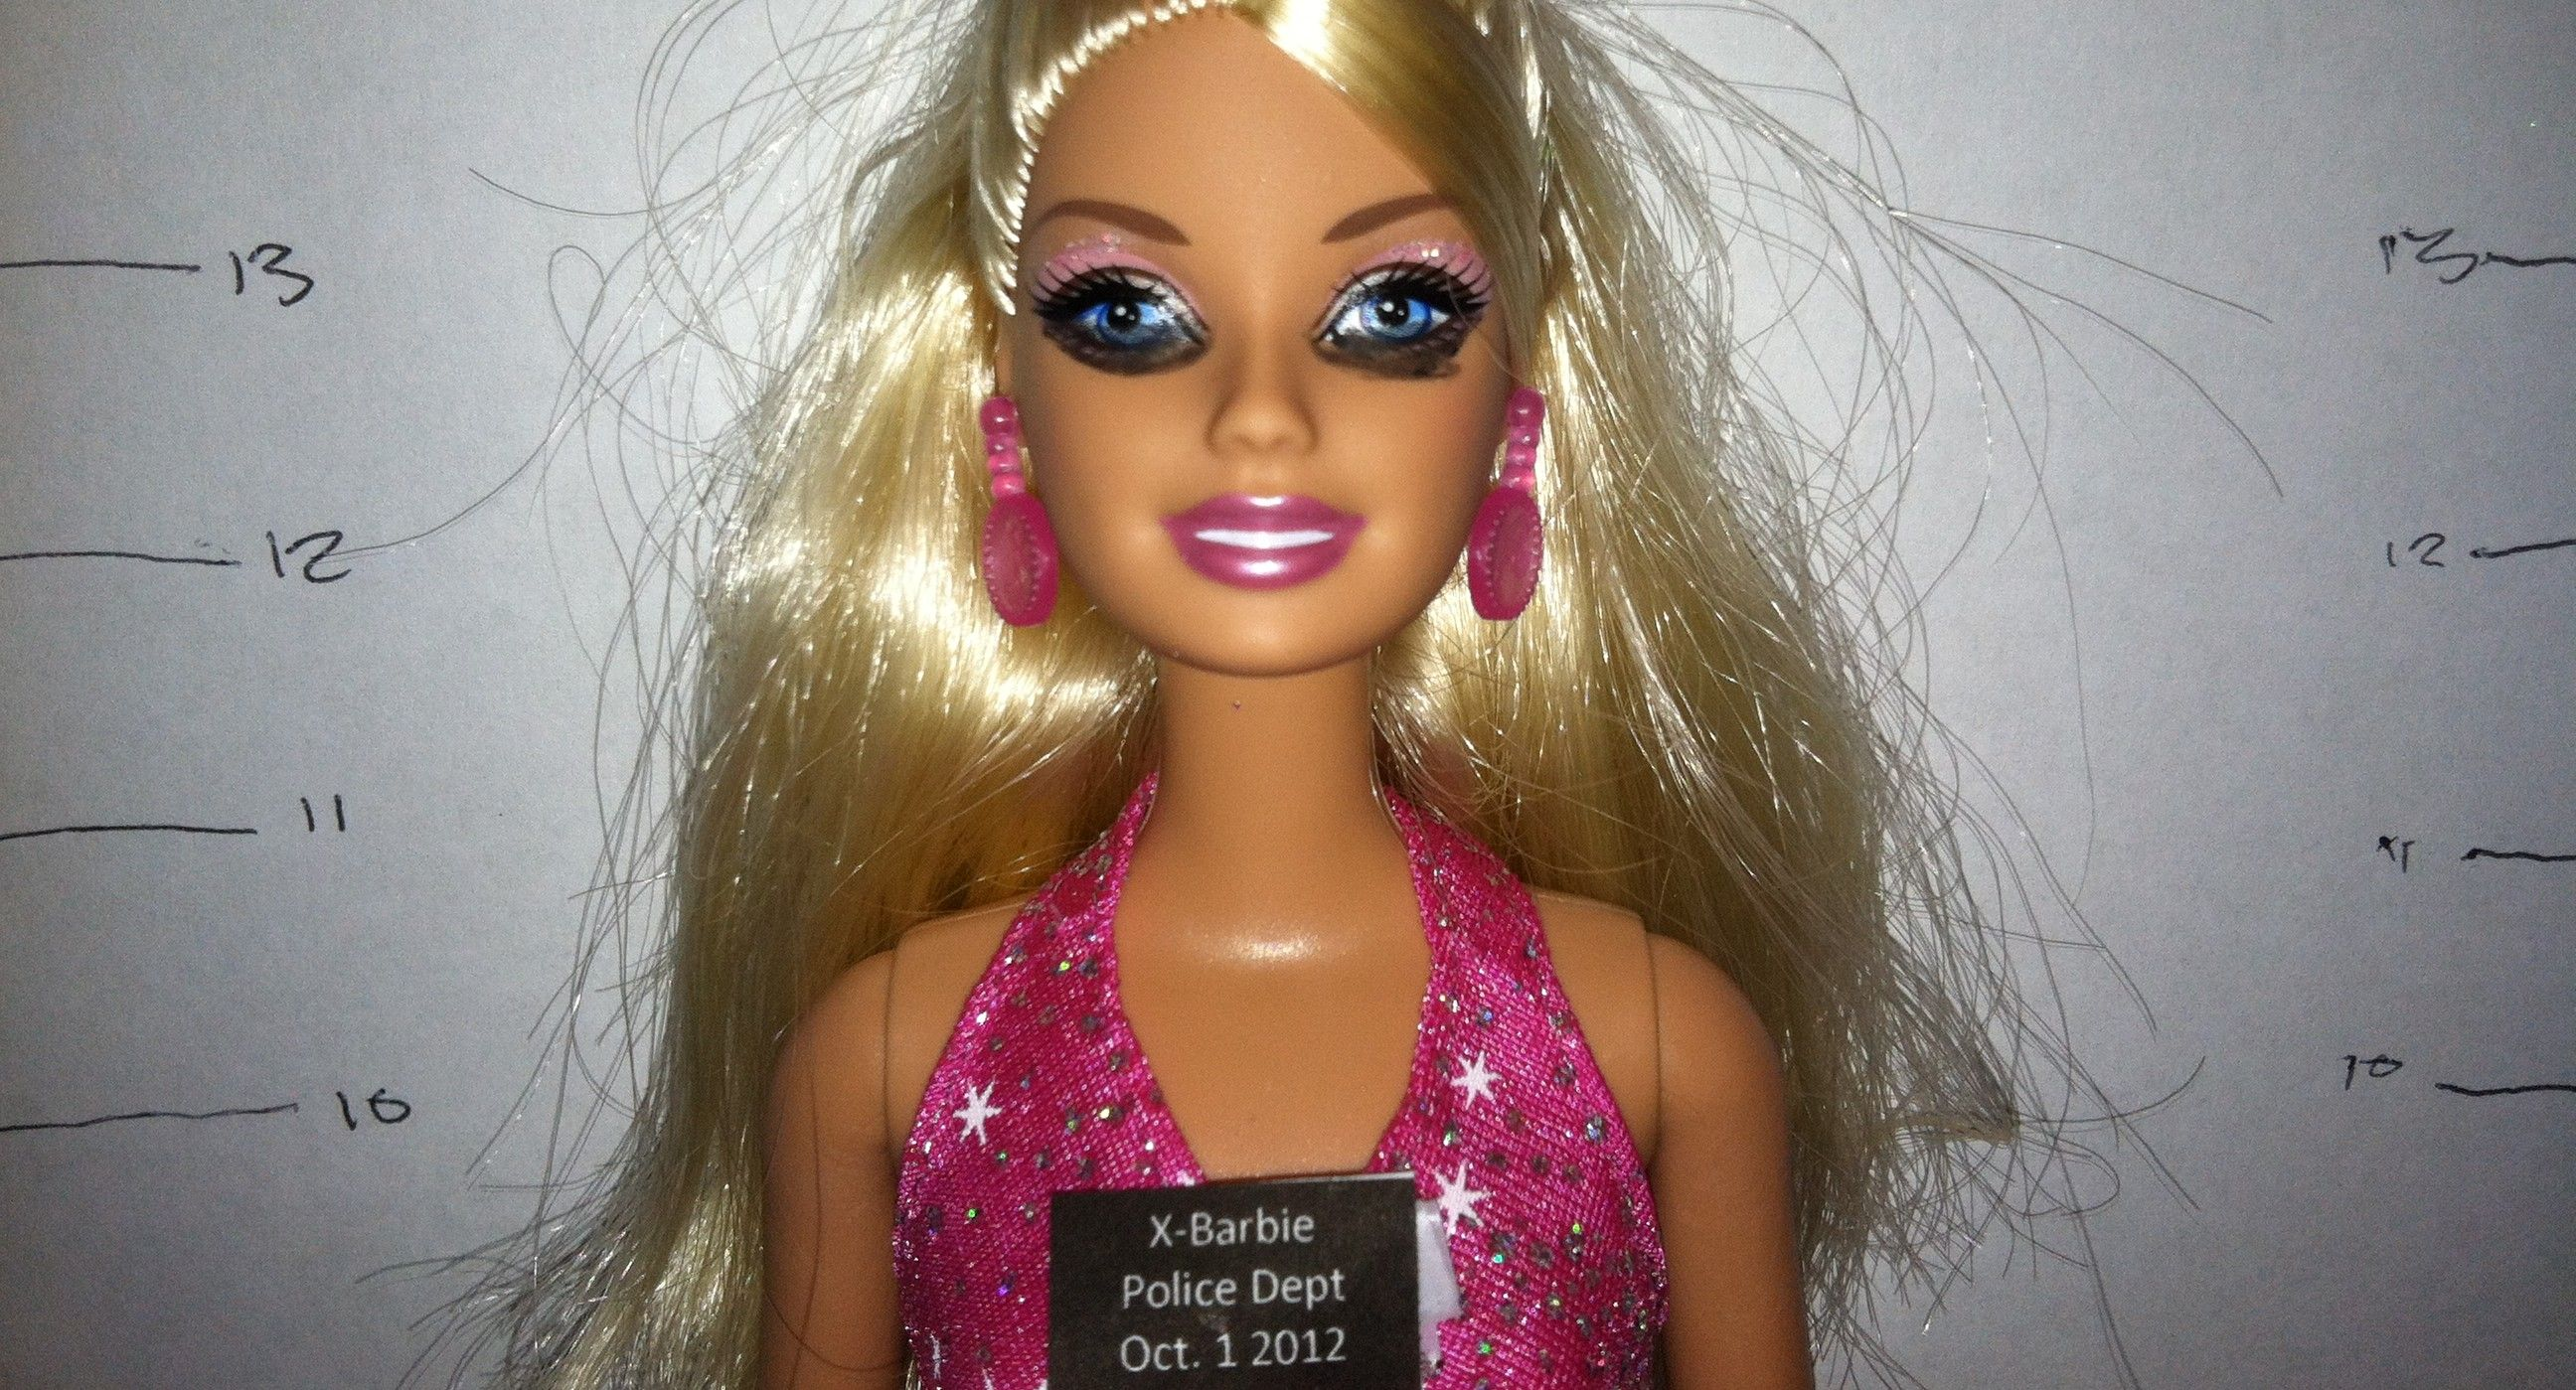 10 most controversial barbie dolls to shock the world - Barbie barbie barbie barbie barbie ...